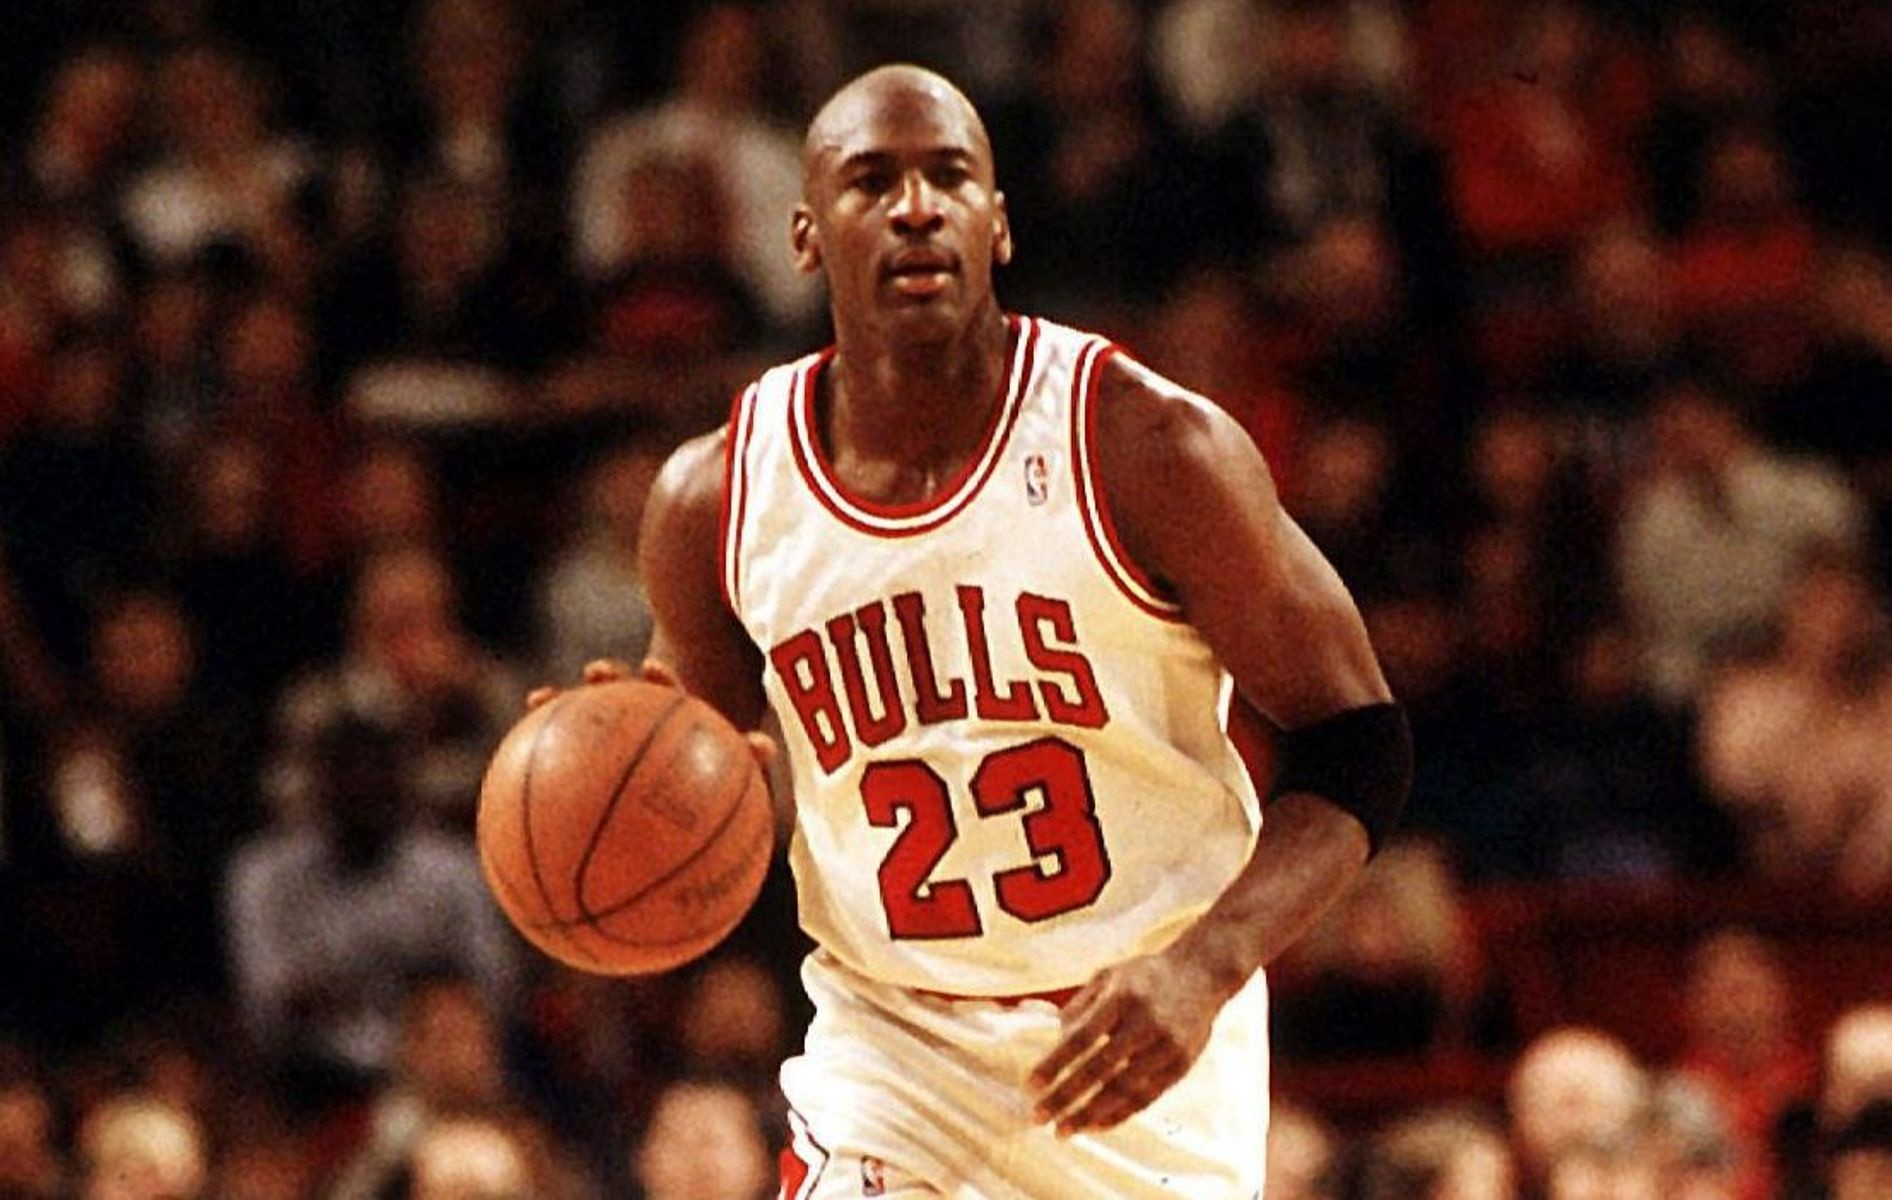 Chicago Bulls: Michael Jordan Dropped 52 Points After Drinking 10 Beers